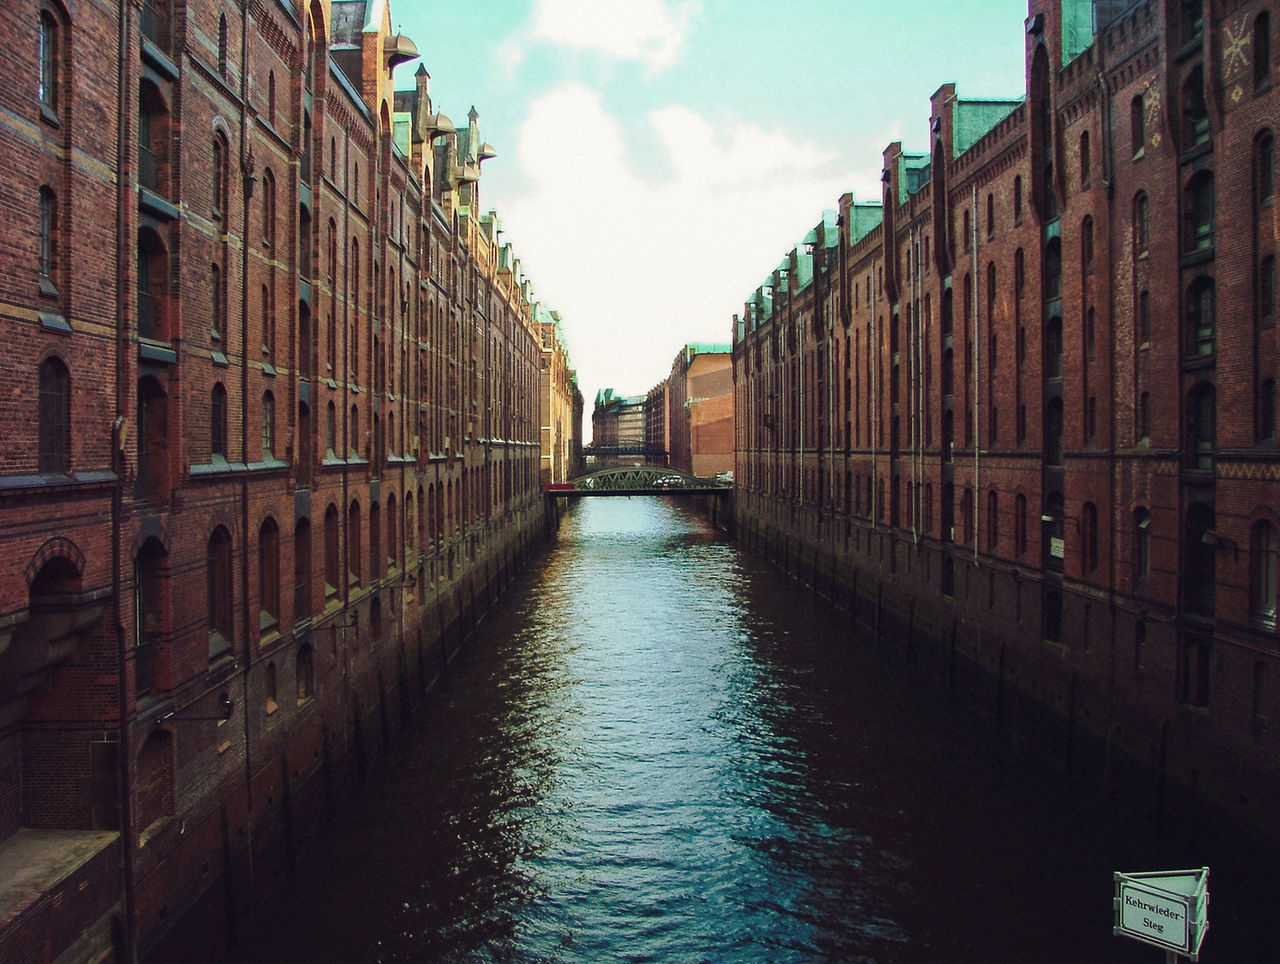 View of canal between buildings